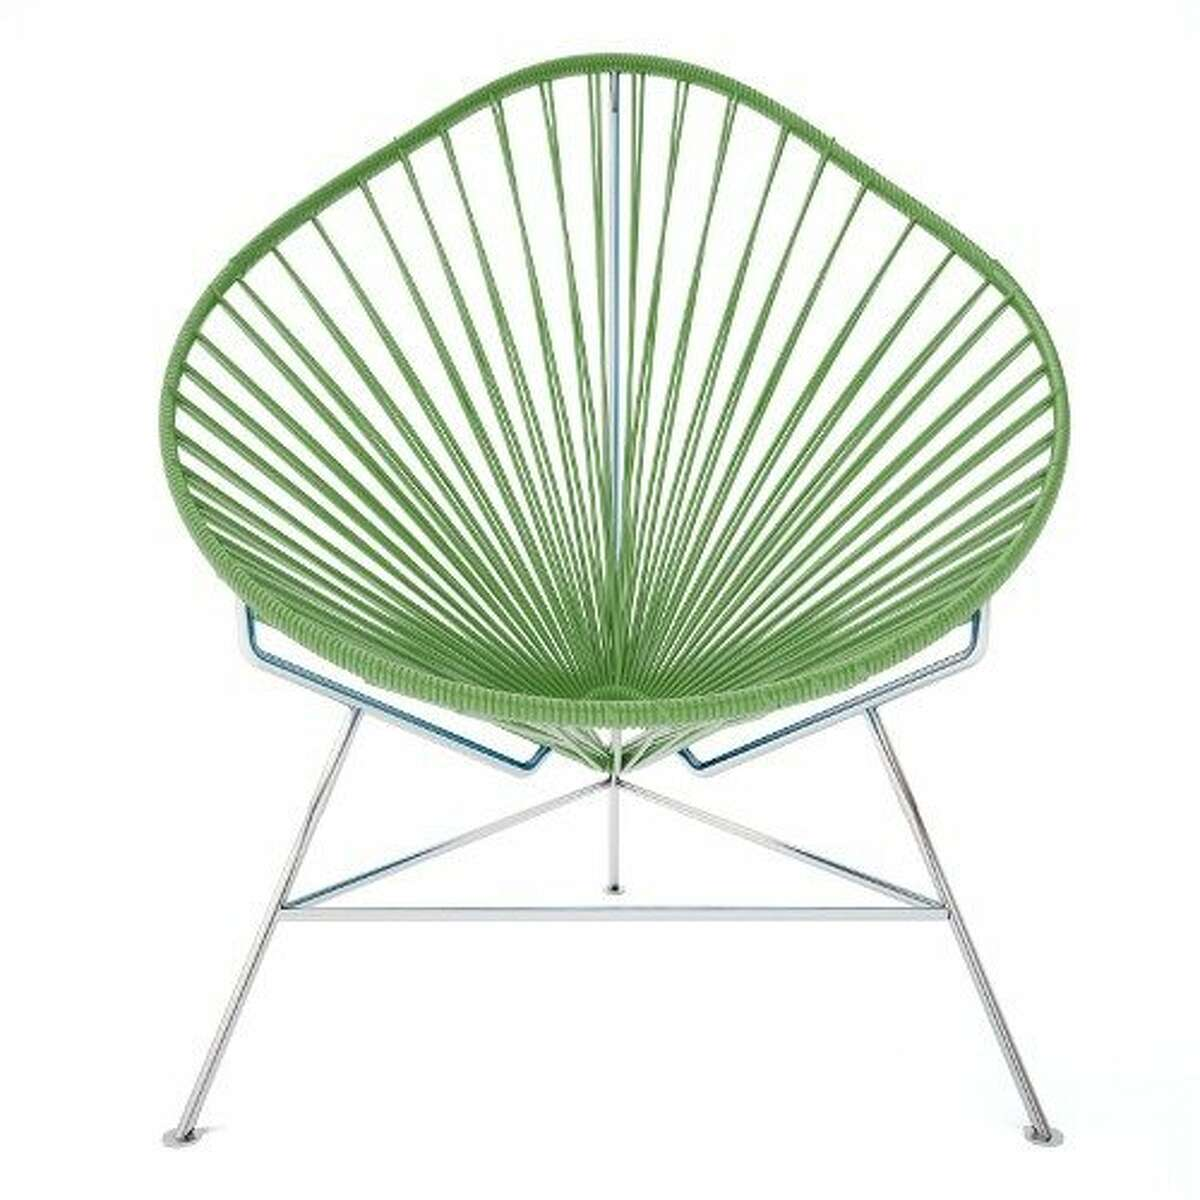 More: $475 Acapulco Chair from Y Living (yliving.com)